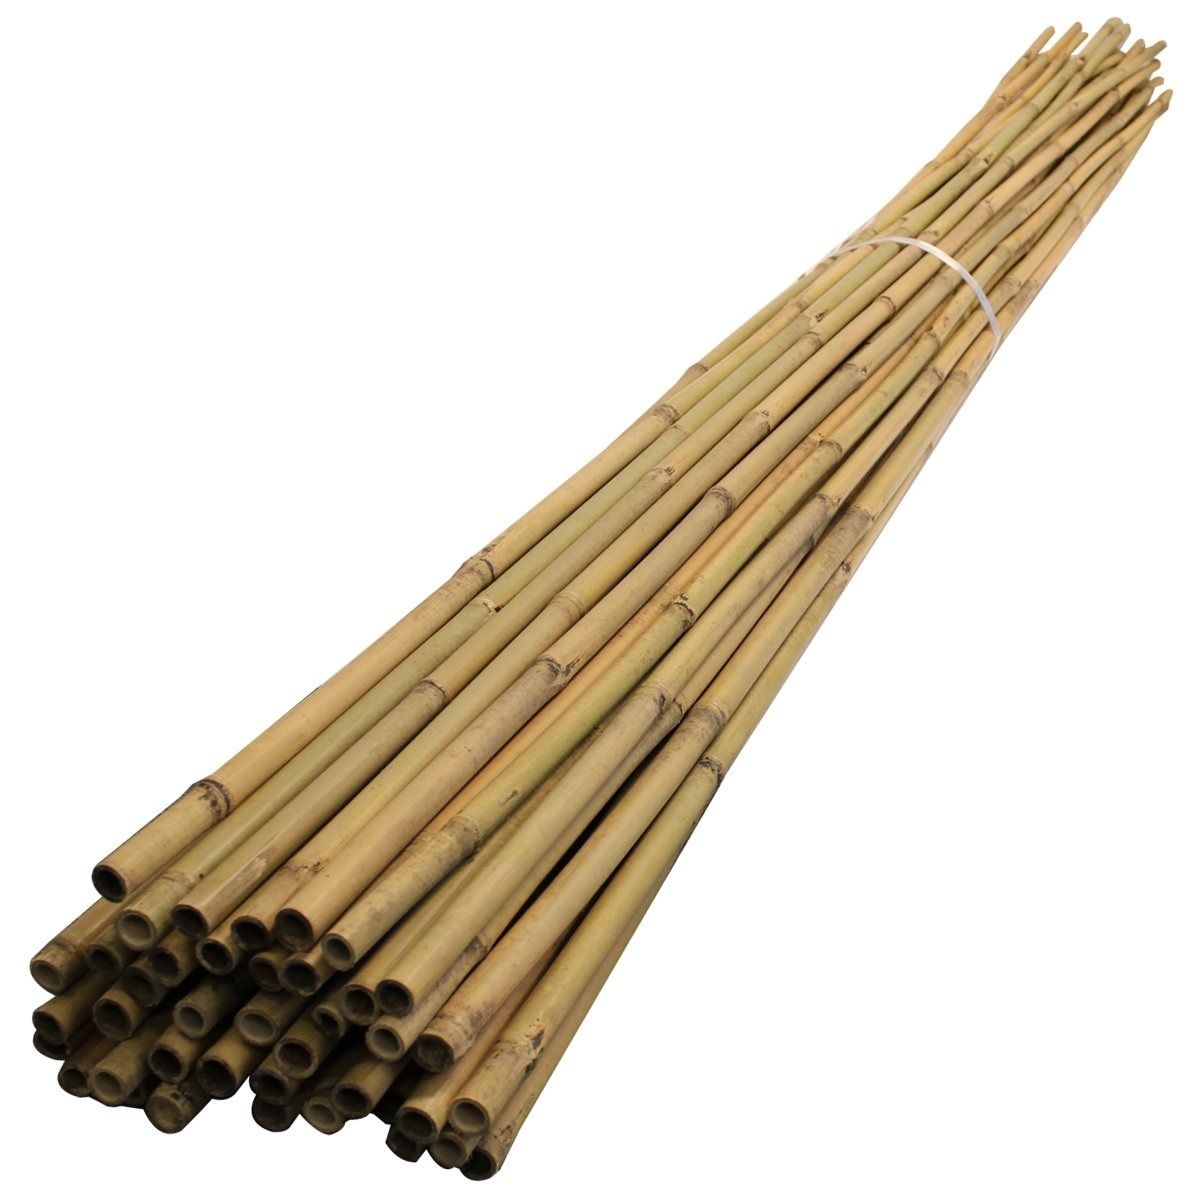 6ft Bamboo Canes - Pack of 10